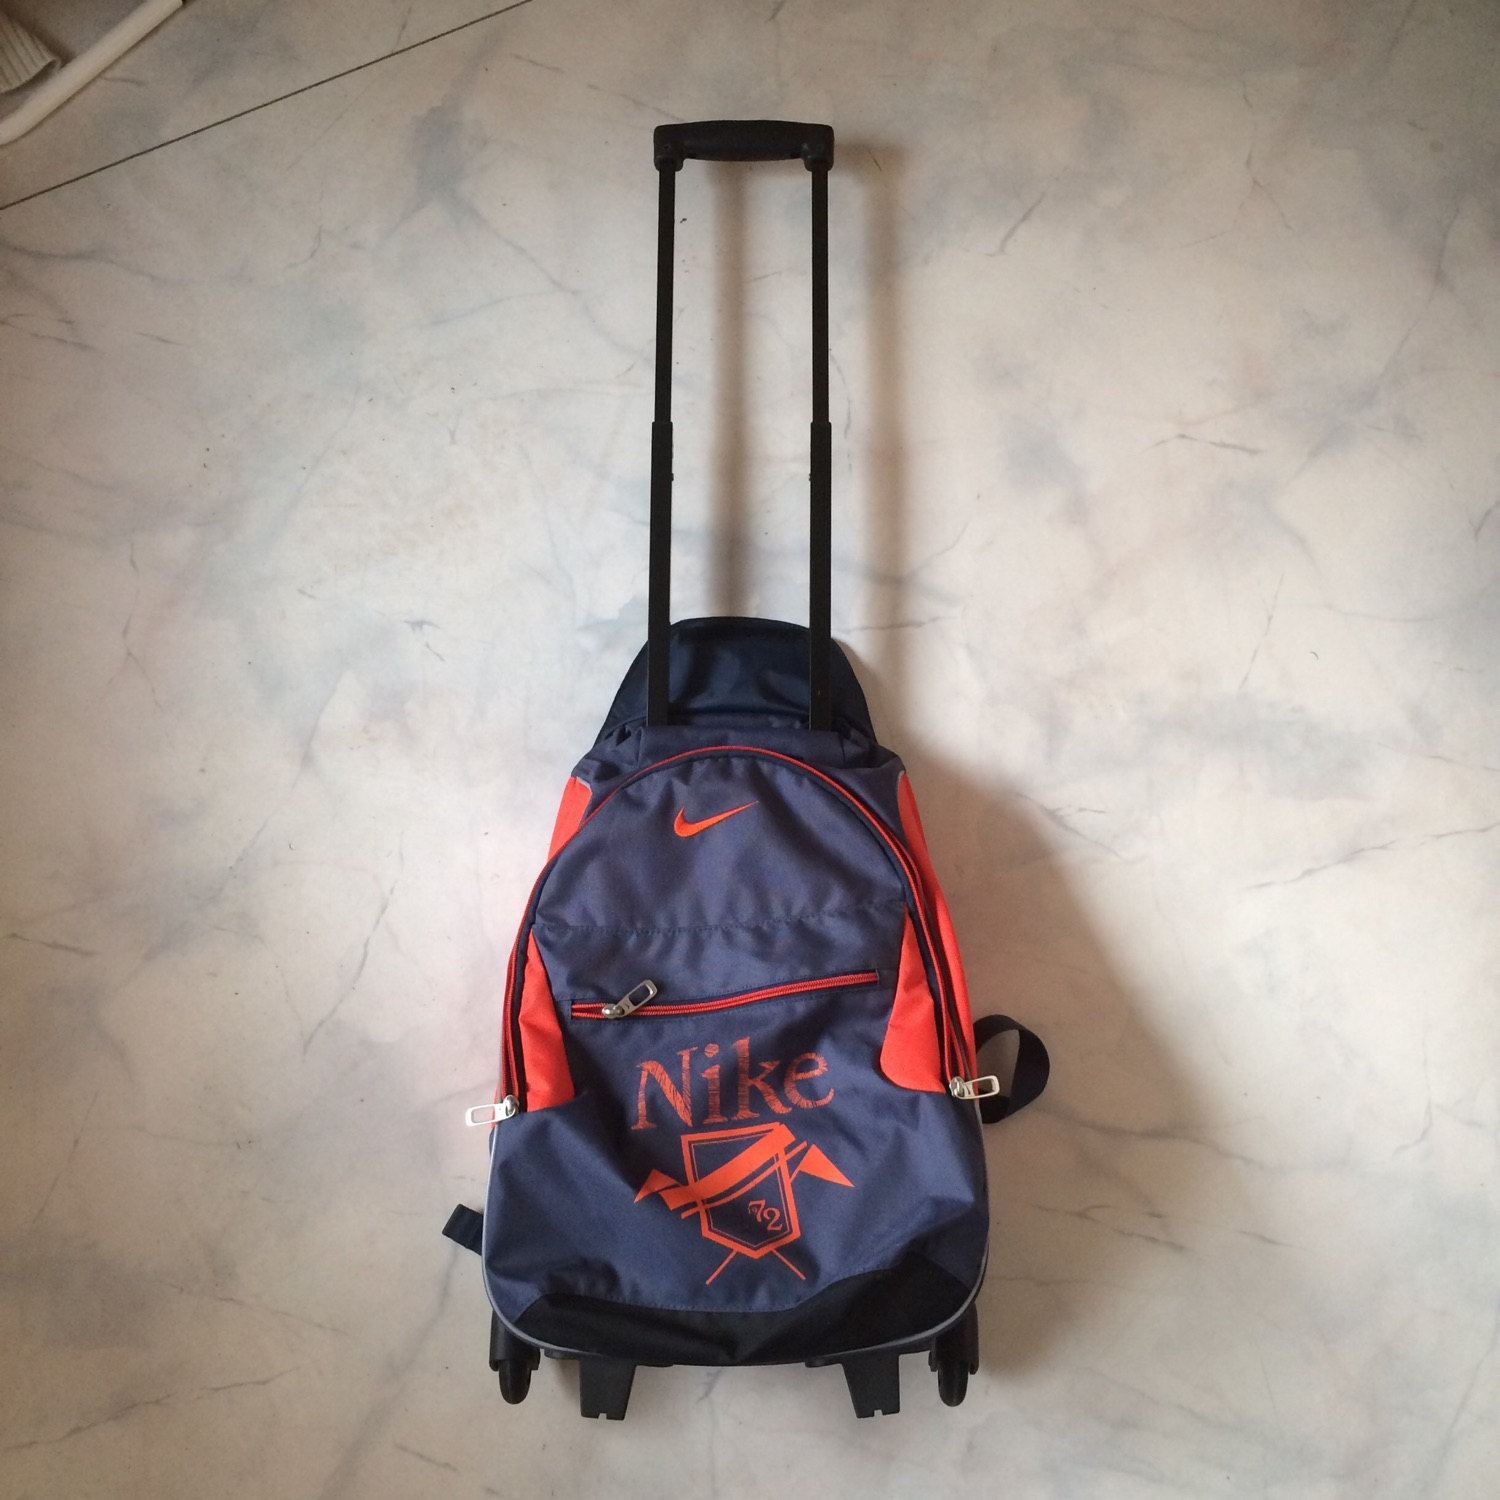 Vintage Niks Small Suitcase / Backpack